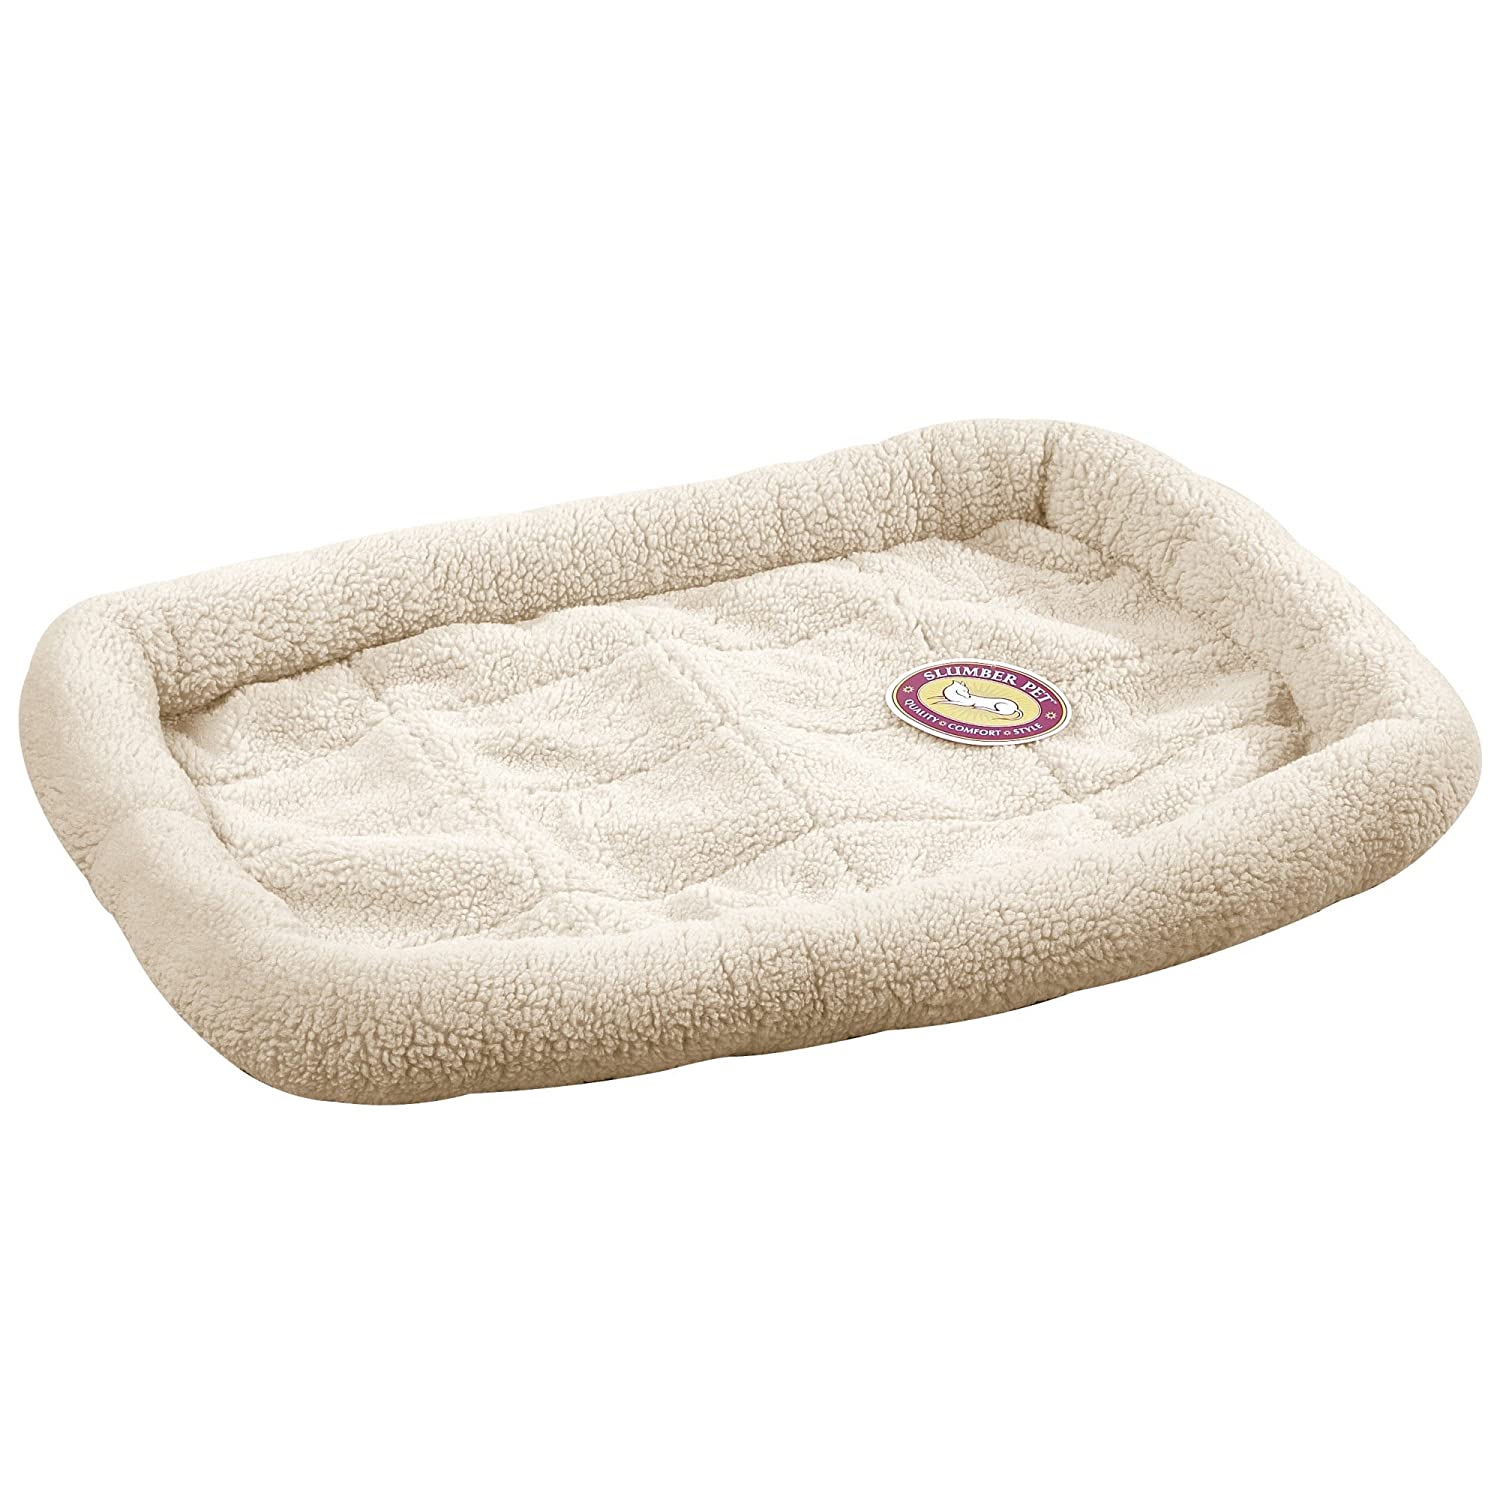 Amazon.com : Slumber Pet Sherpa Crate Beds - Comfortable Bumper-Style Beds  for Dogs and Cats, X-Small, Natural Beige : Dog Crate Pad : Pet Supplies